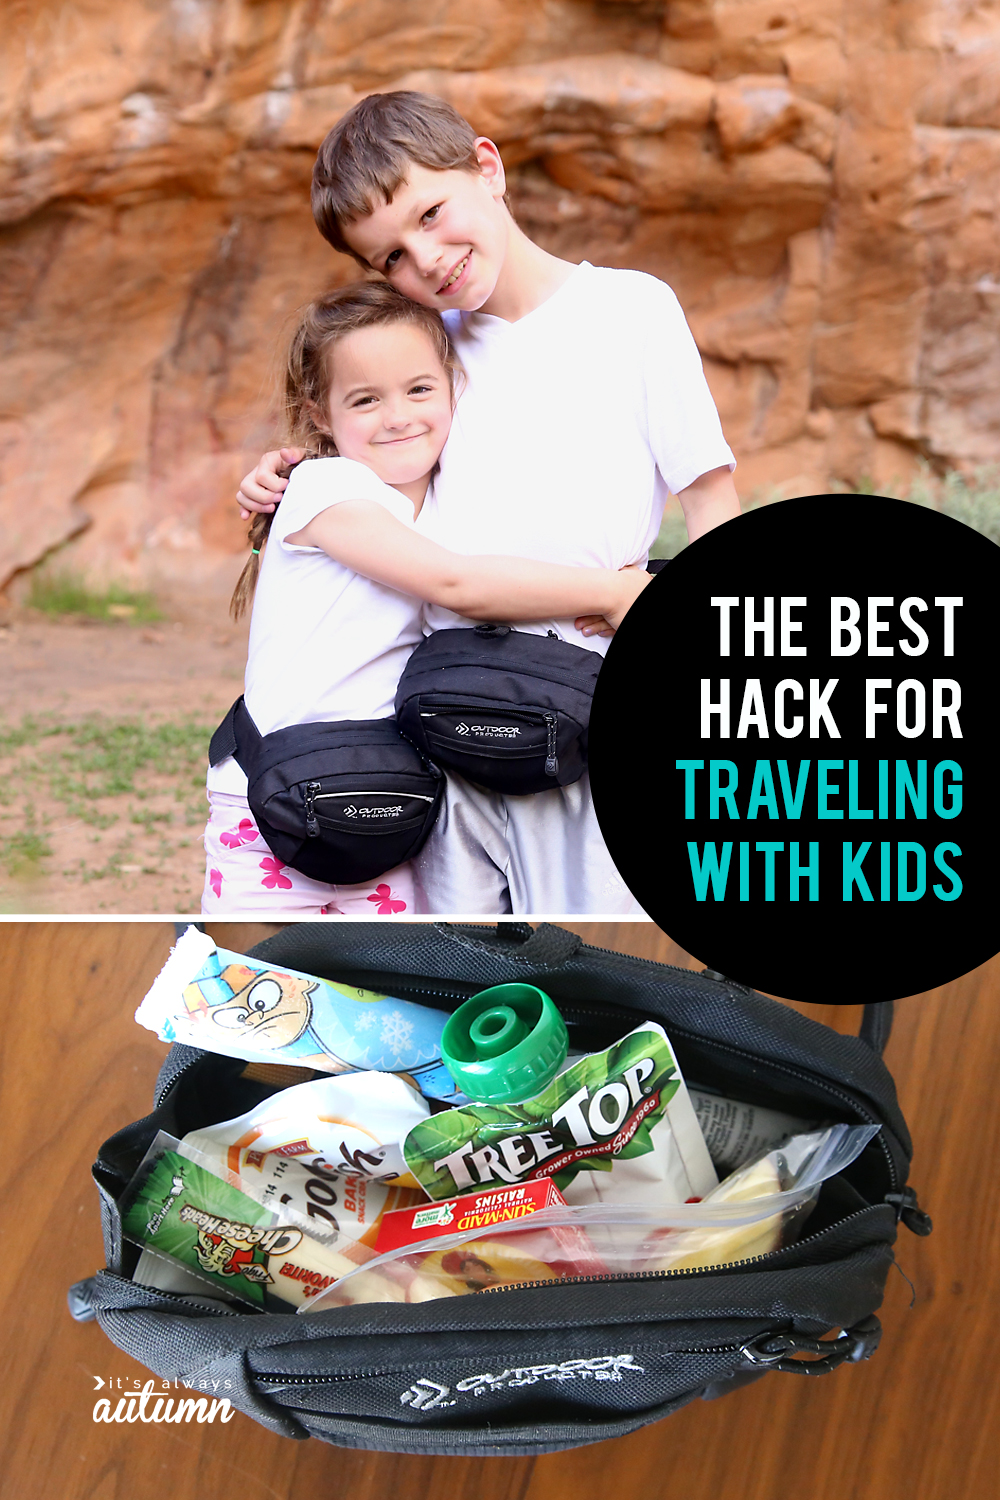 This is the single BEST HACK for traveling with kids! It will make your life so much easier, whether you're going on a road trip, to an amusement park, or just about anywhere else.